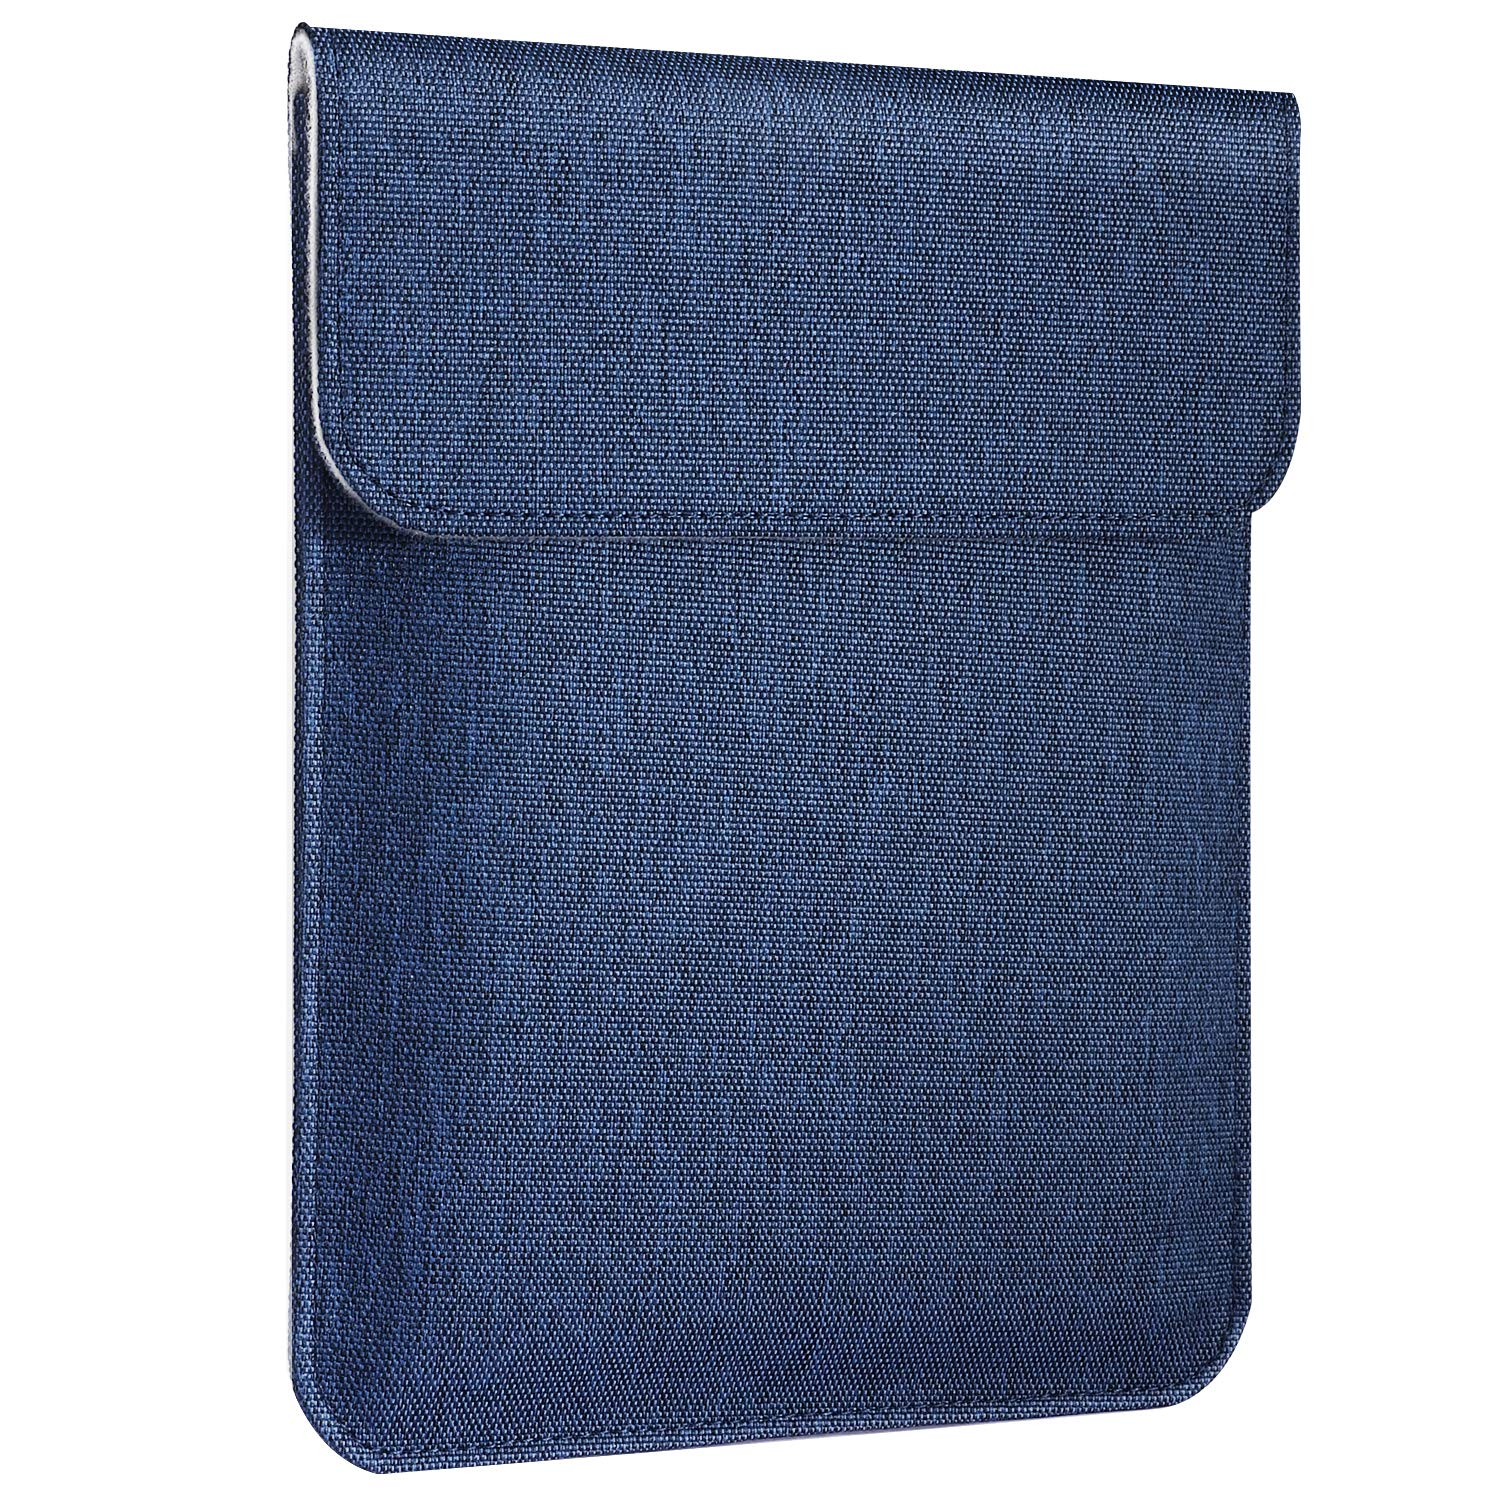 MoKo 7-8 Inch Tablet Sleeve Bag, Magnetic Closure Polyester Cover Case Fits Fire HD 8, Fire 7 2017/2019, Fire HD 8 Kids Edition 2017, Kindle Oasis 2017, Kindle (8th Generation, 2016) - Indigo